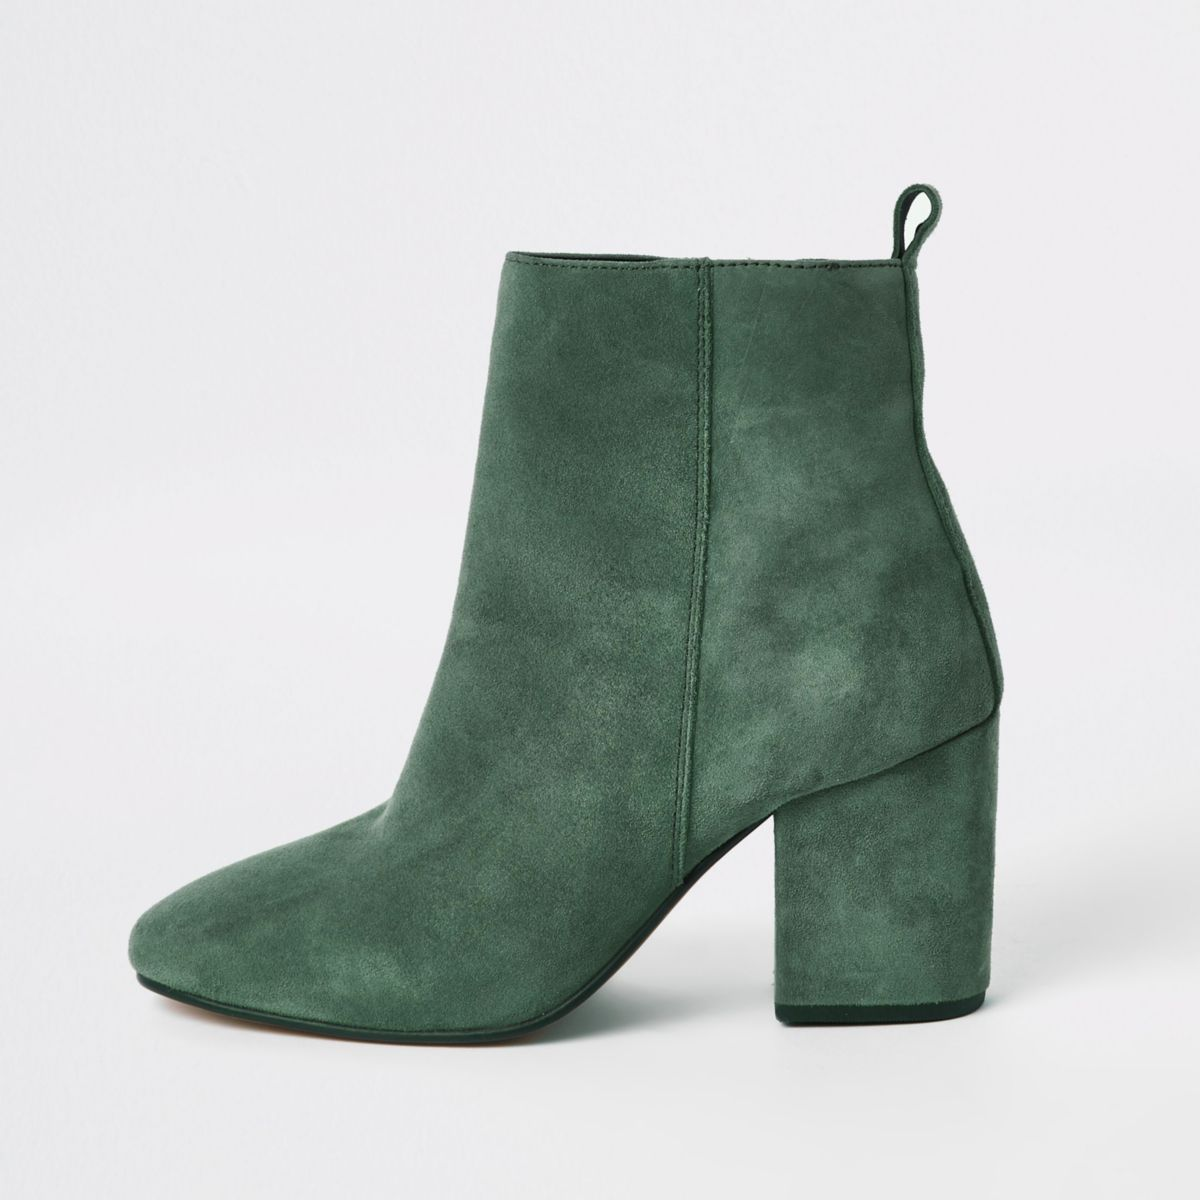 Green leather square toe boots